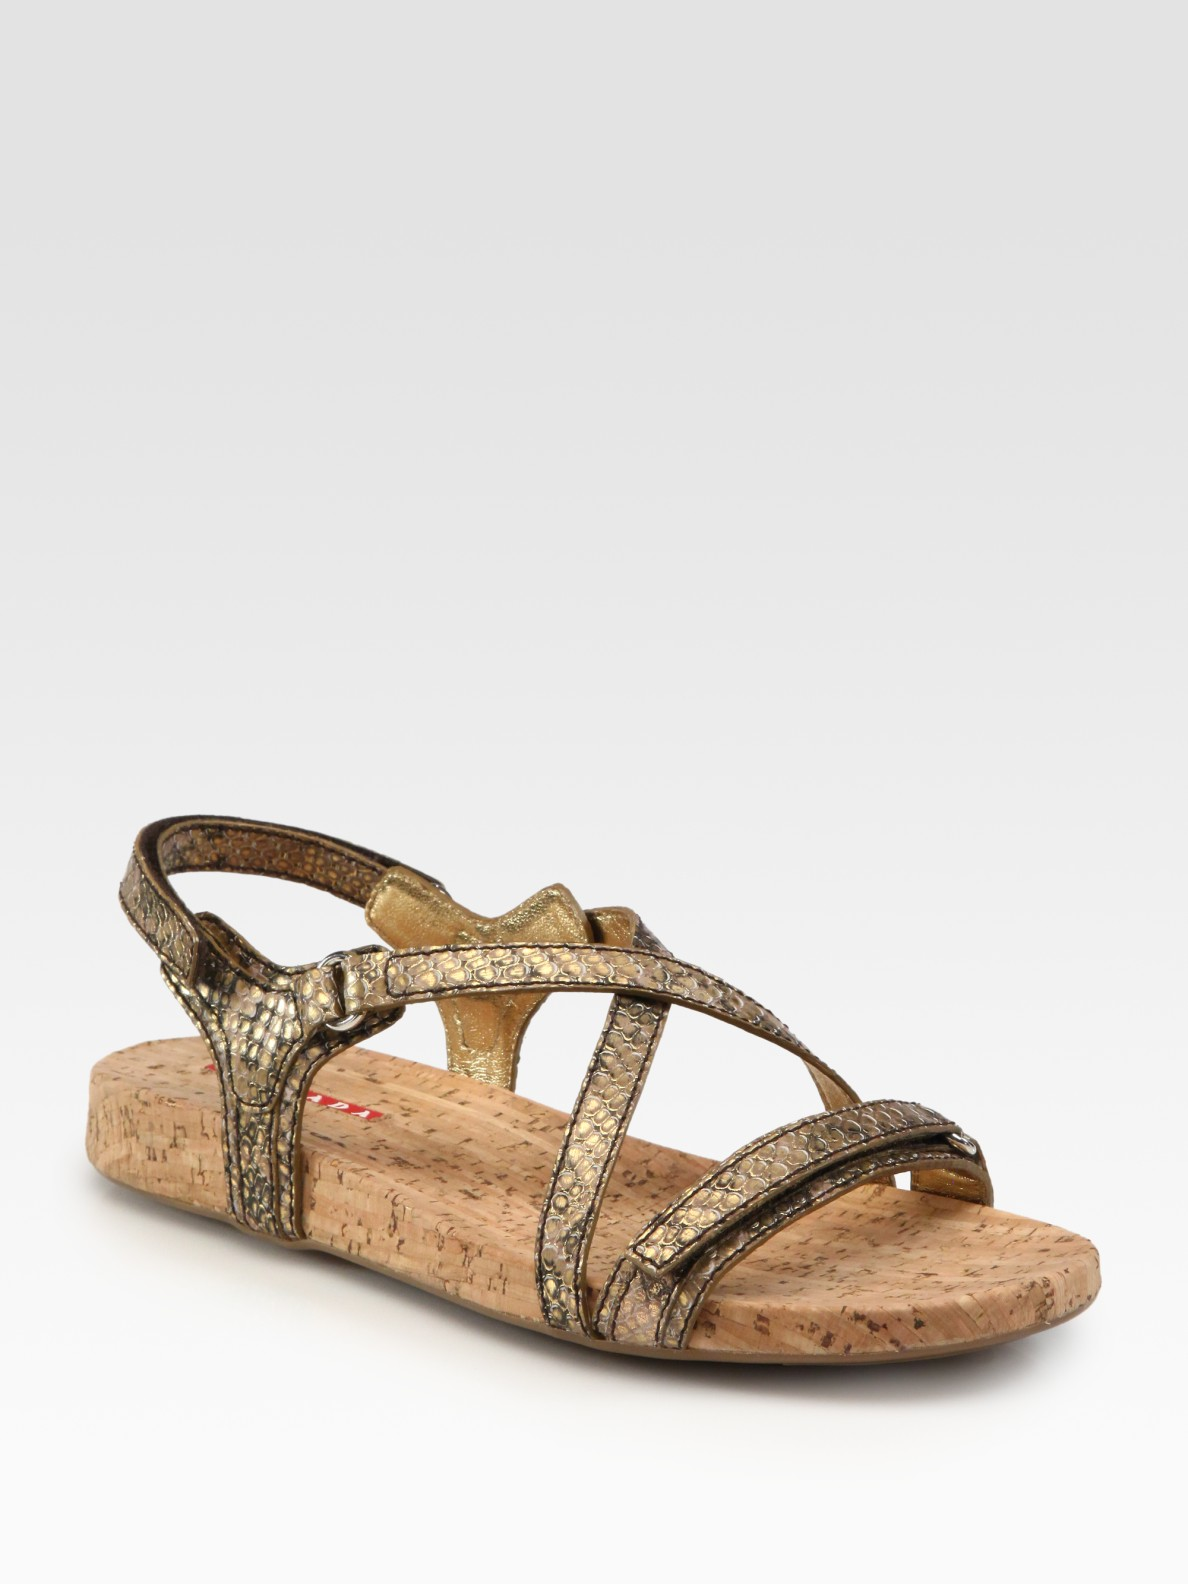 Prada Stamped Python And Cork Flat Sandals In Gold Lyst